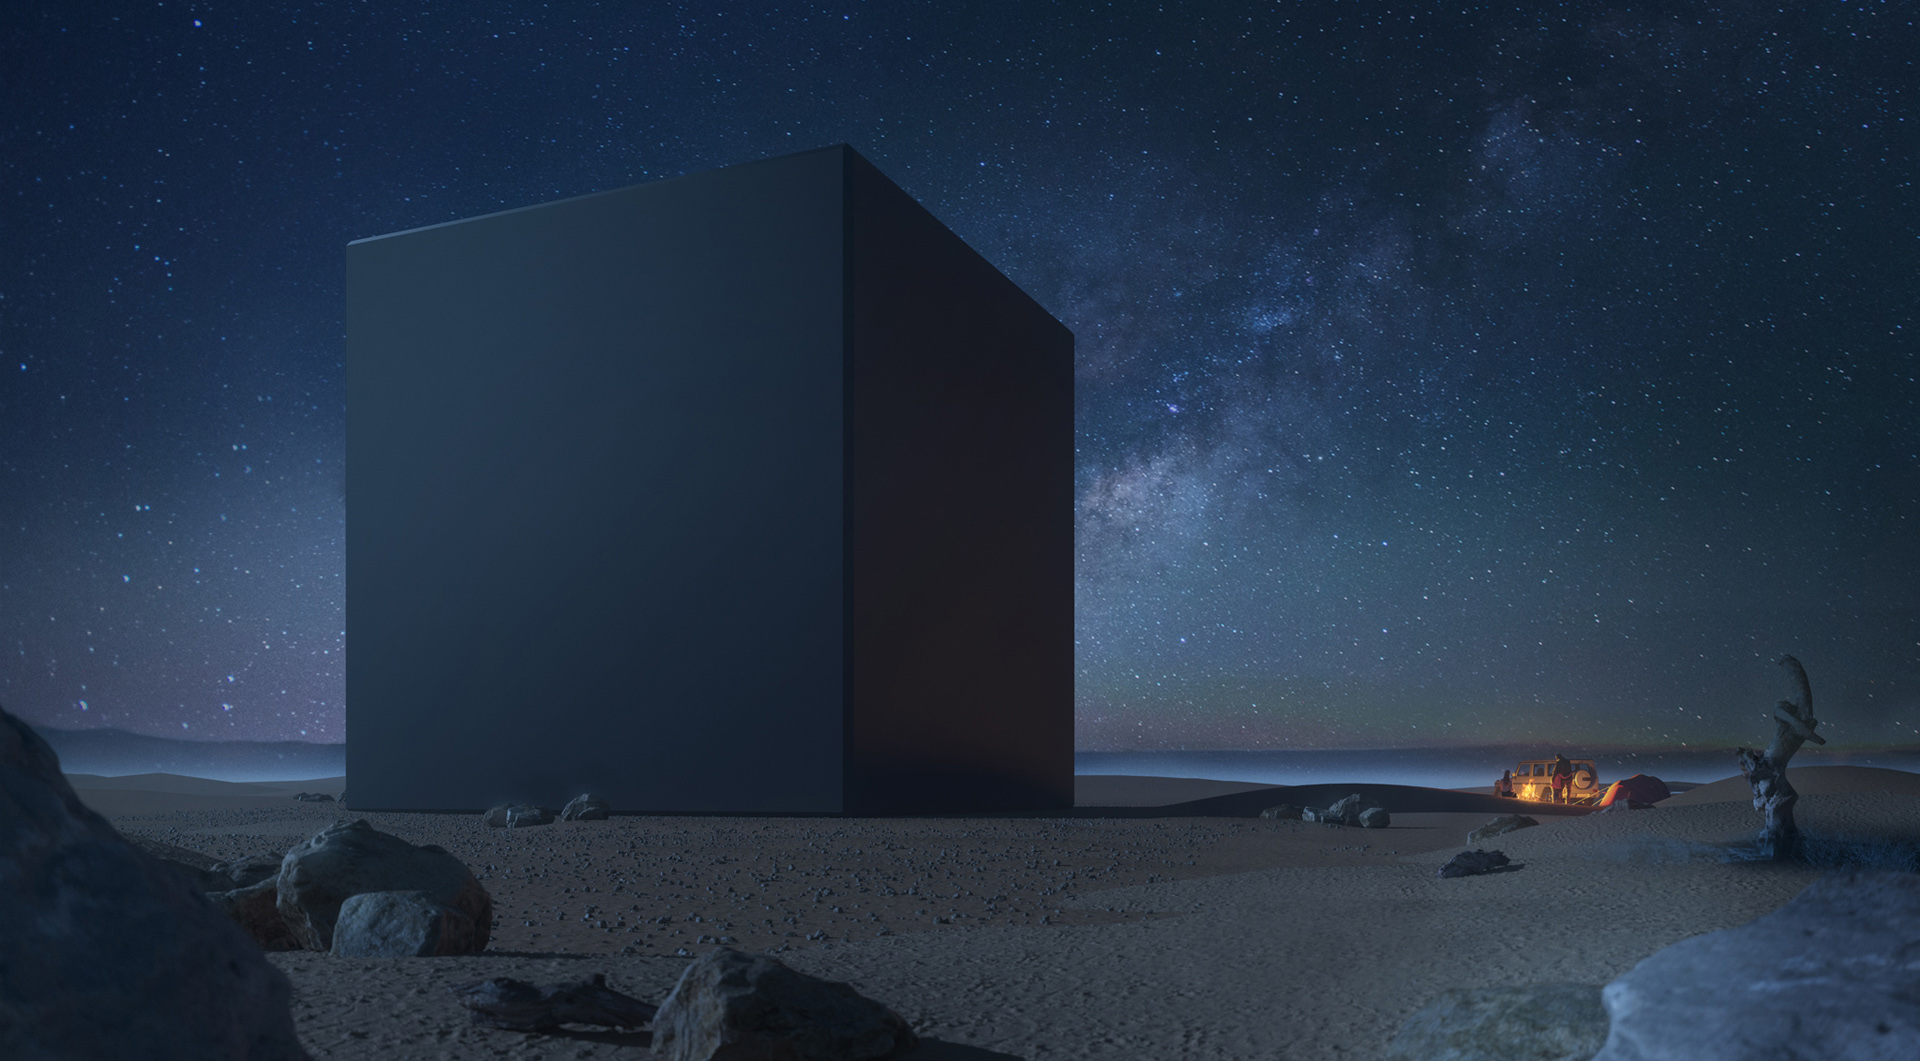 Monolith - 3D visualization of the monument by night